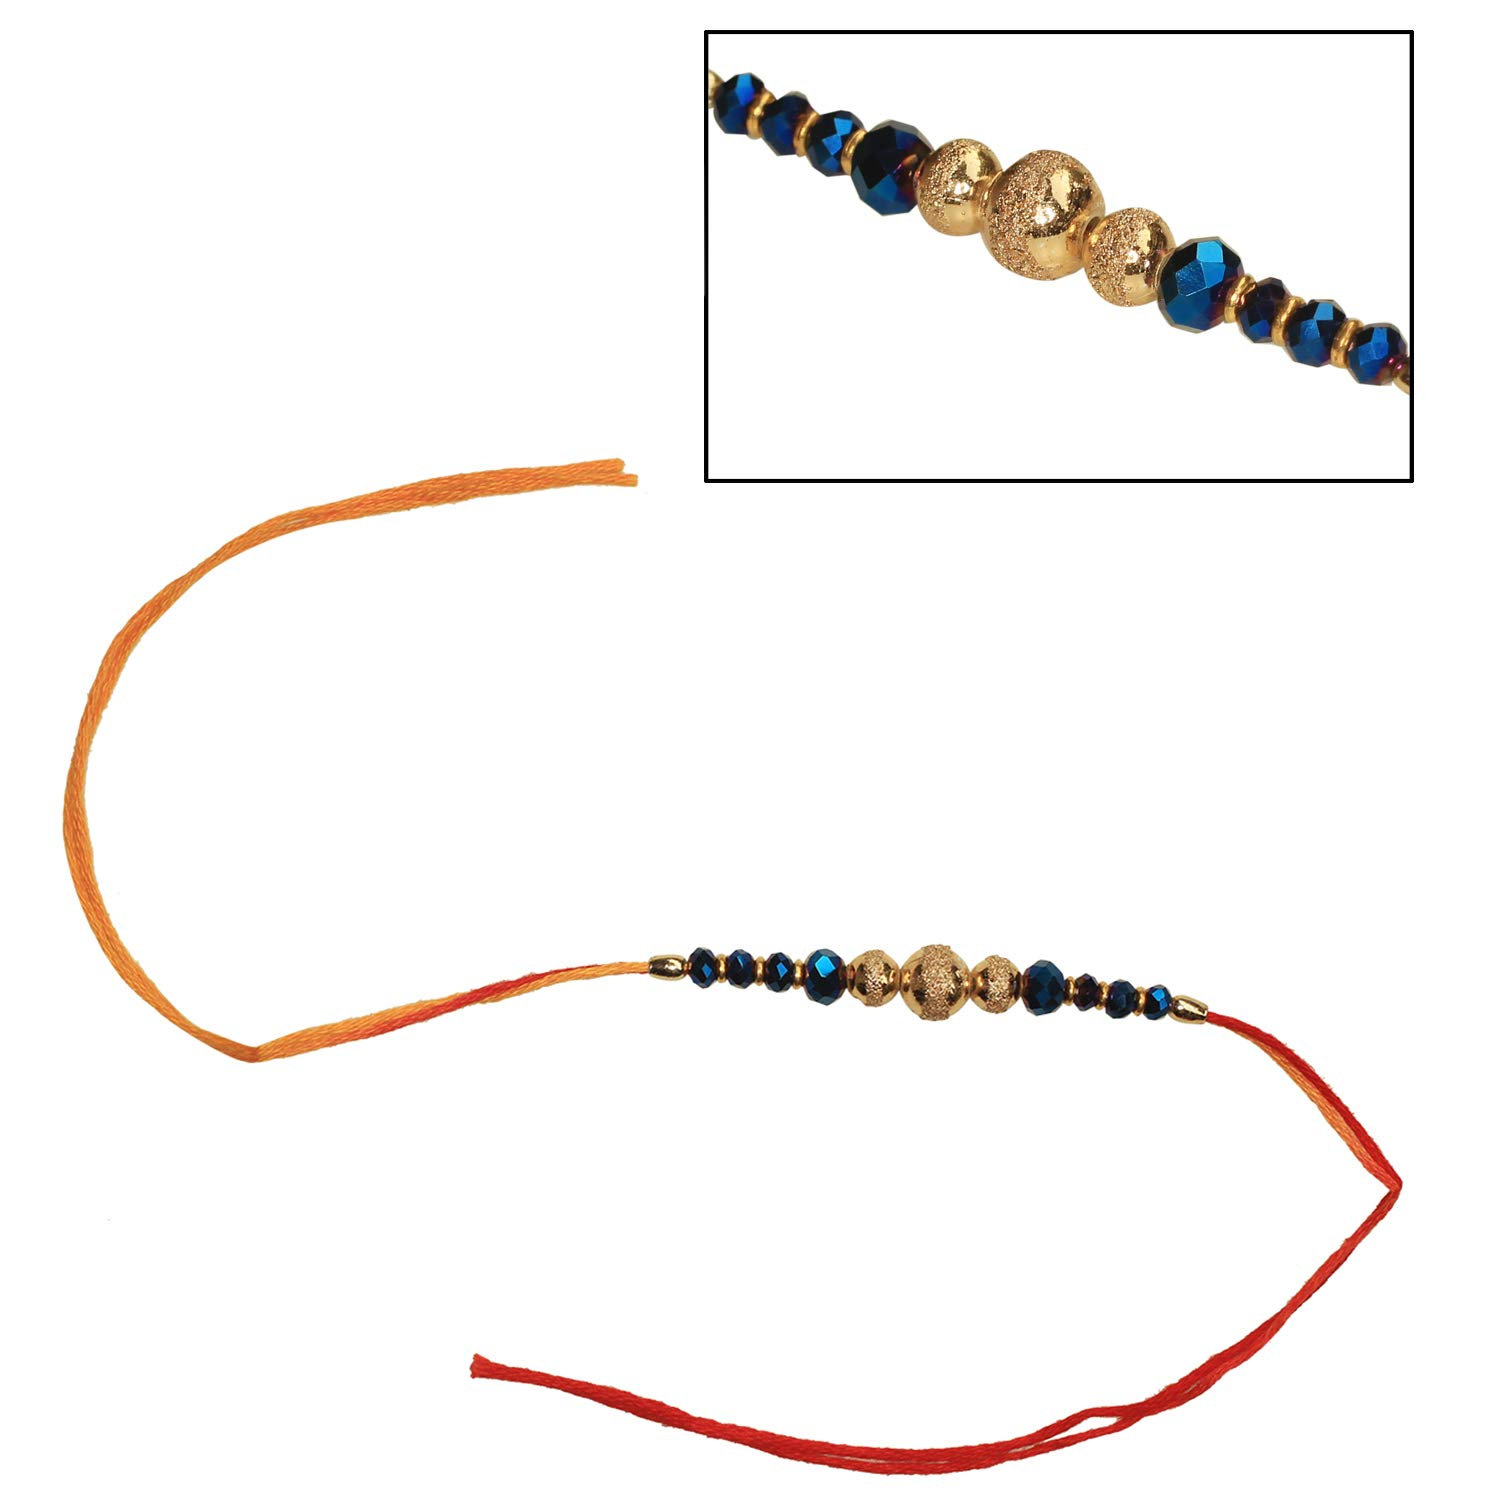 Tree of Craft Rakhi for Brother Bhaiya Bhabhi with 8 Blue Beads 3 Gold Beads in Red Orange Thread Raksha Bandhan RakshaBandhan Rakhi Best Fancy Bhai Rakhi Greeting Band Charming Kids Bracelet